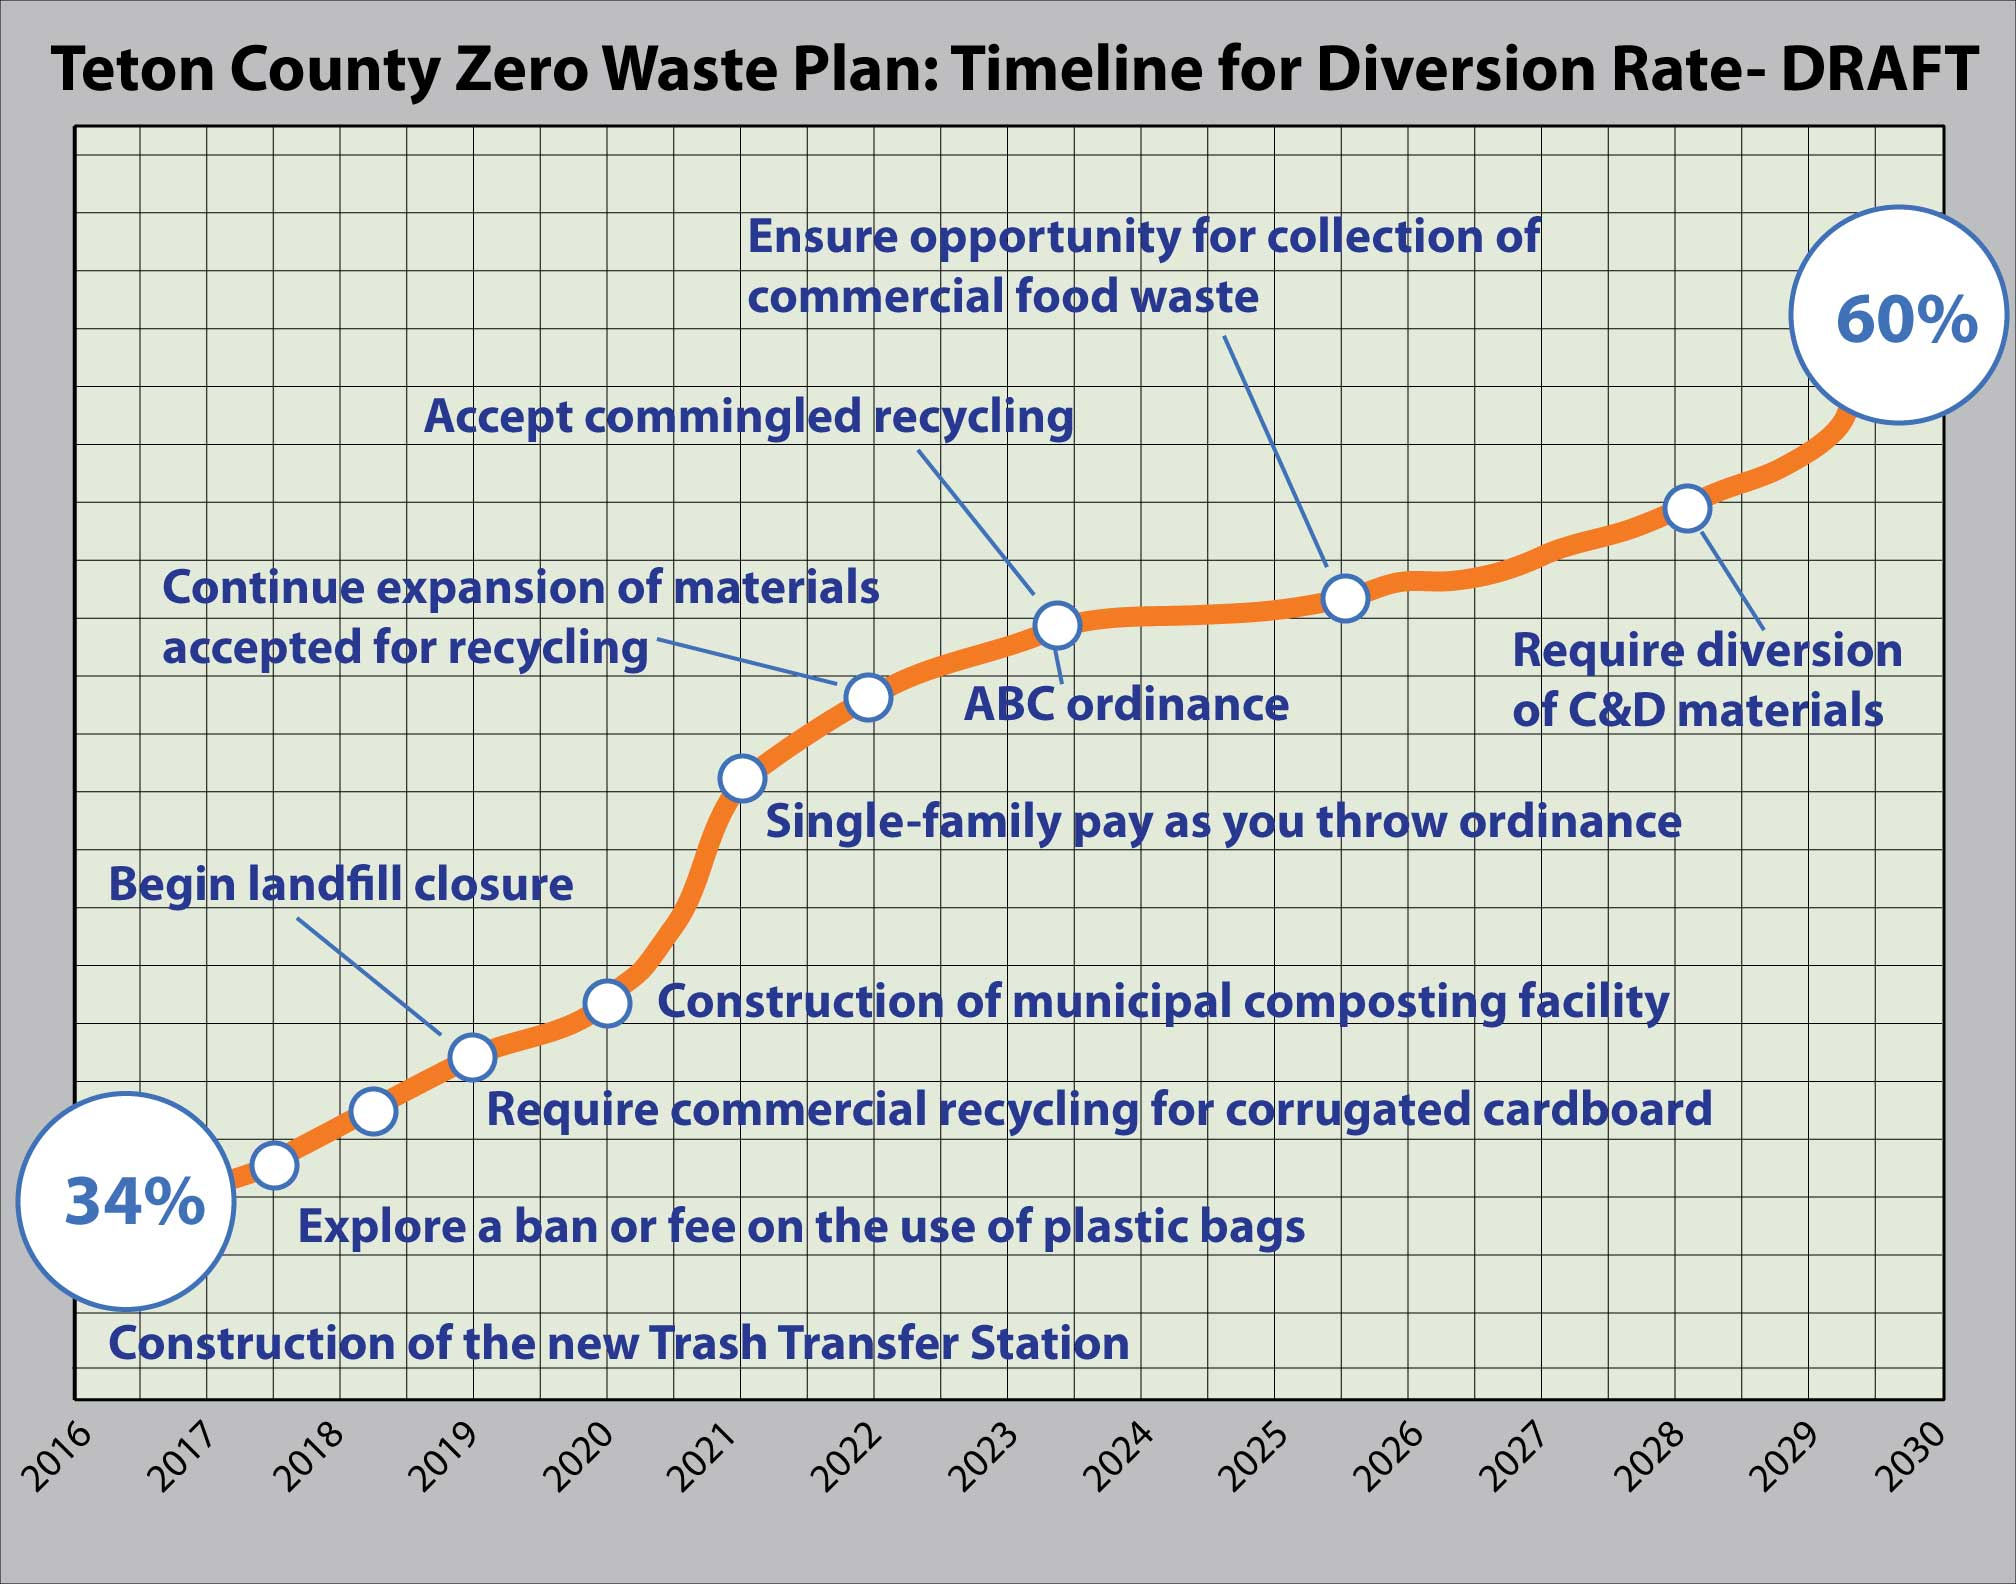 A rough timeline of recommendations and waste diversion from an early version of the Teton County Zero Waste Plan. Created by inSight Sustainability.